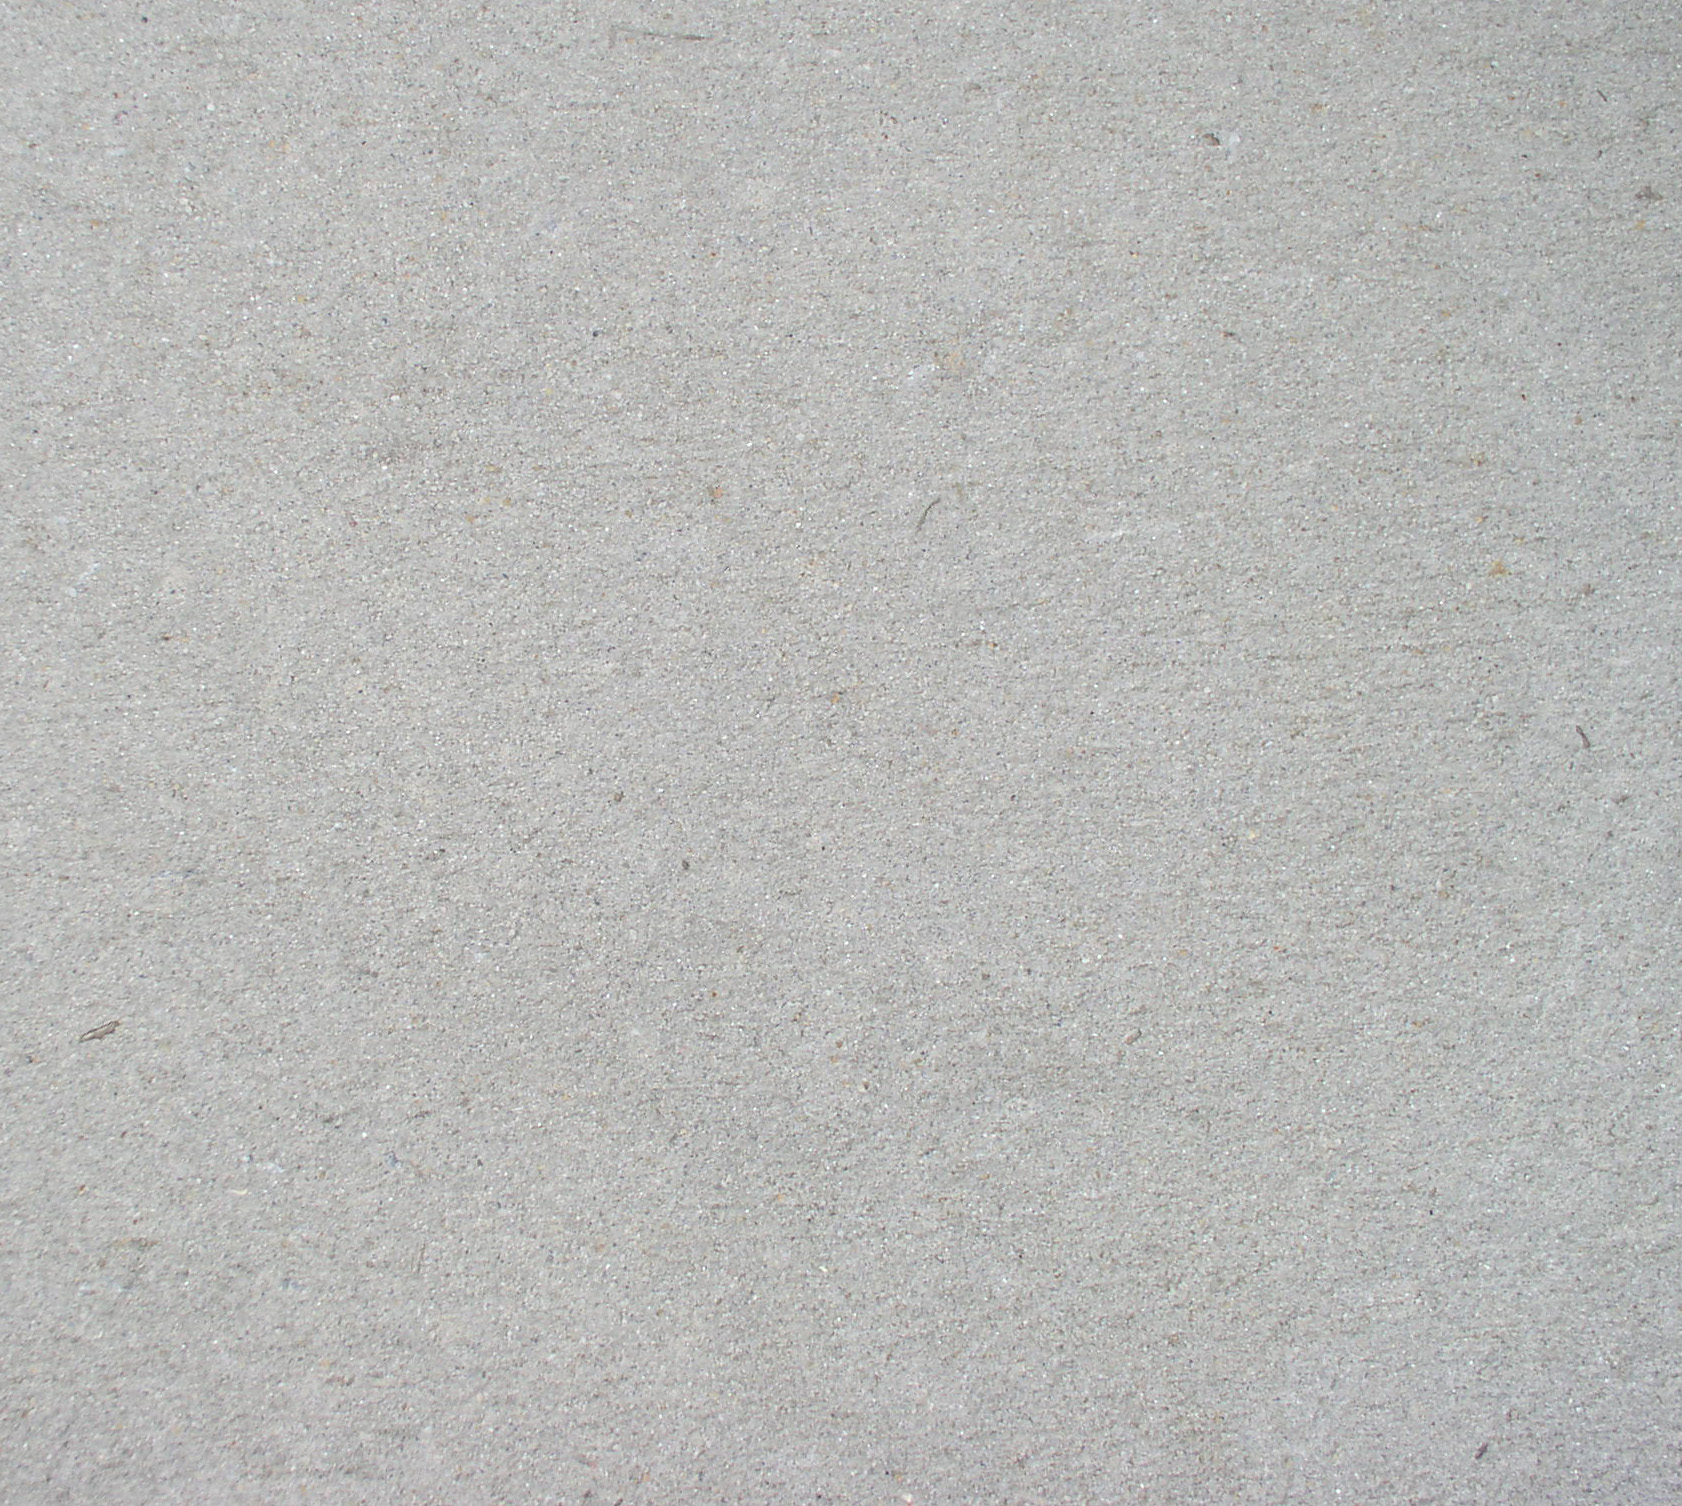 concrete, wall, stucco, download photo, background, beton texture